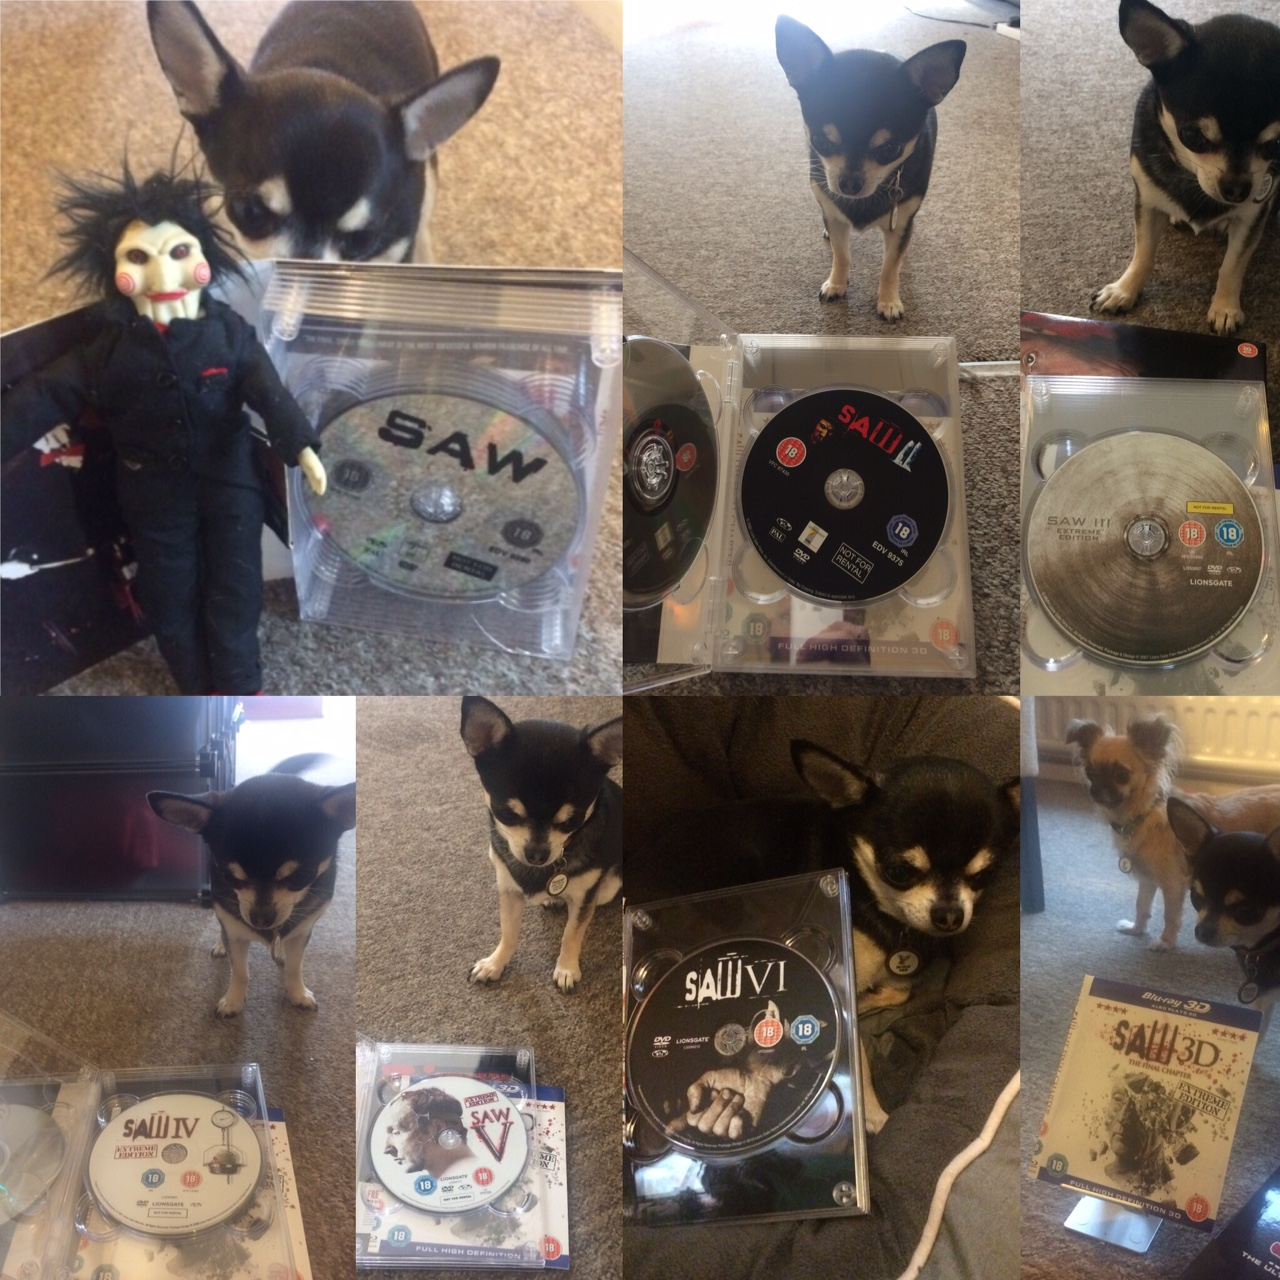 Chihuahua with Saw movies on DVD